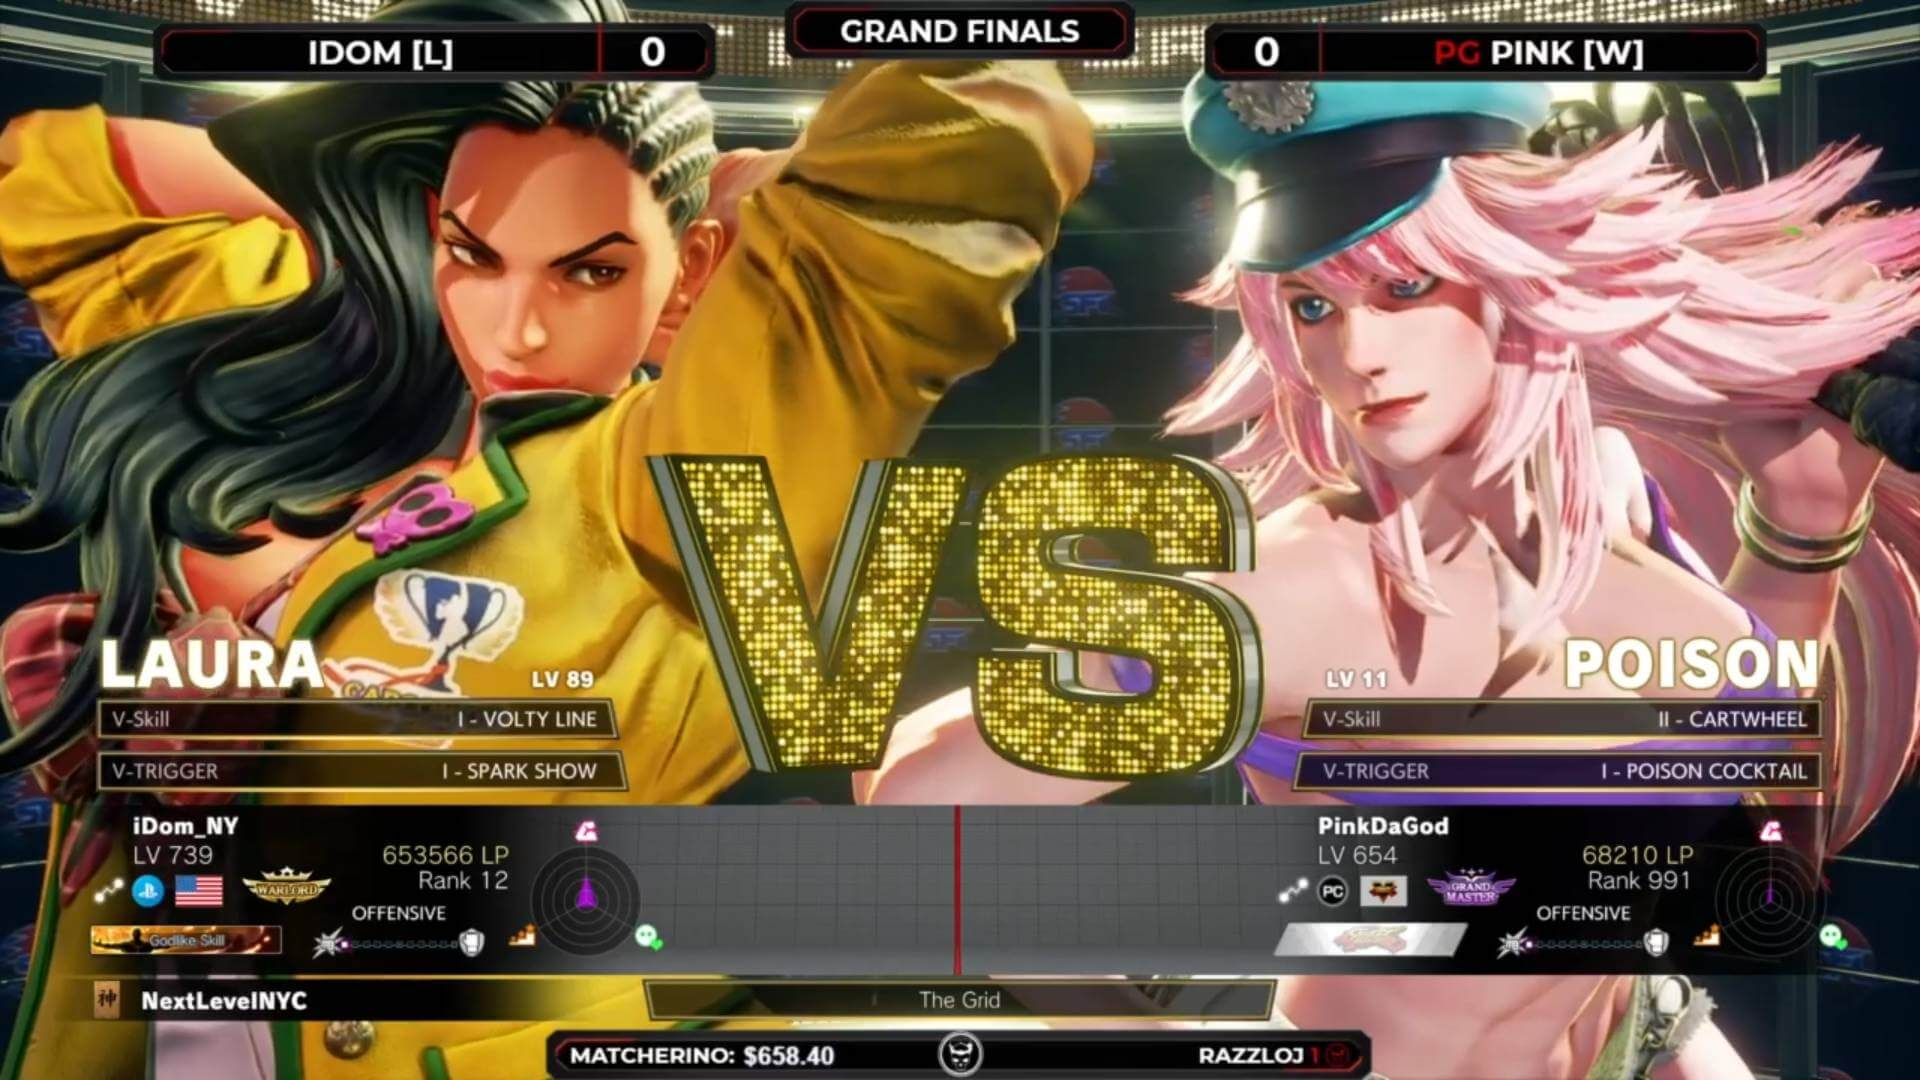 New Week of Street Fighter Matches at Next Level Battle Circuit